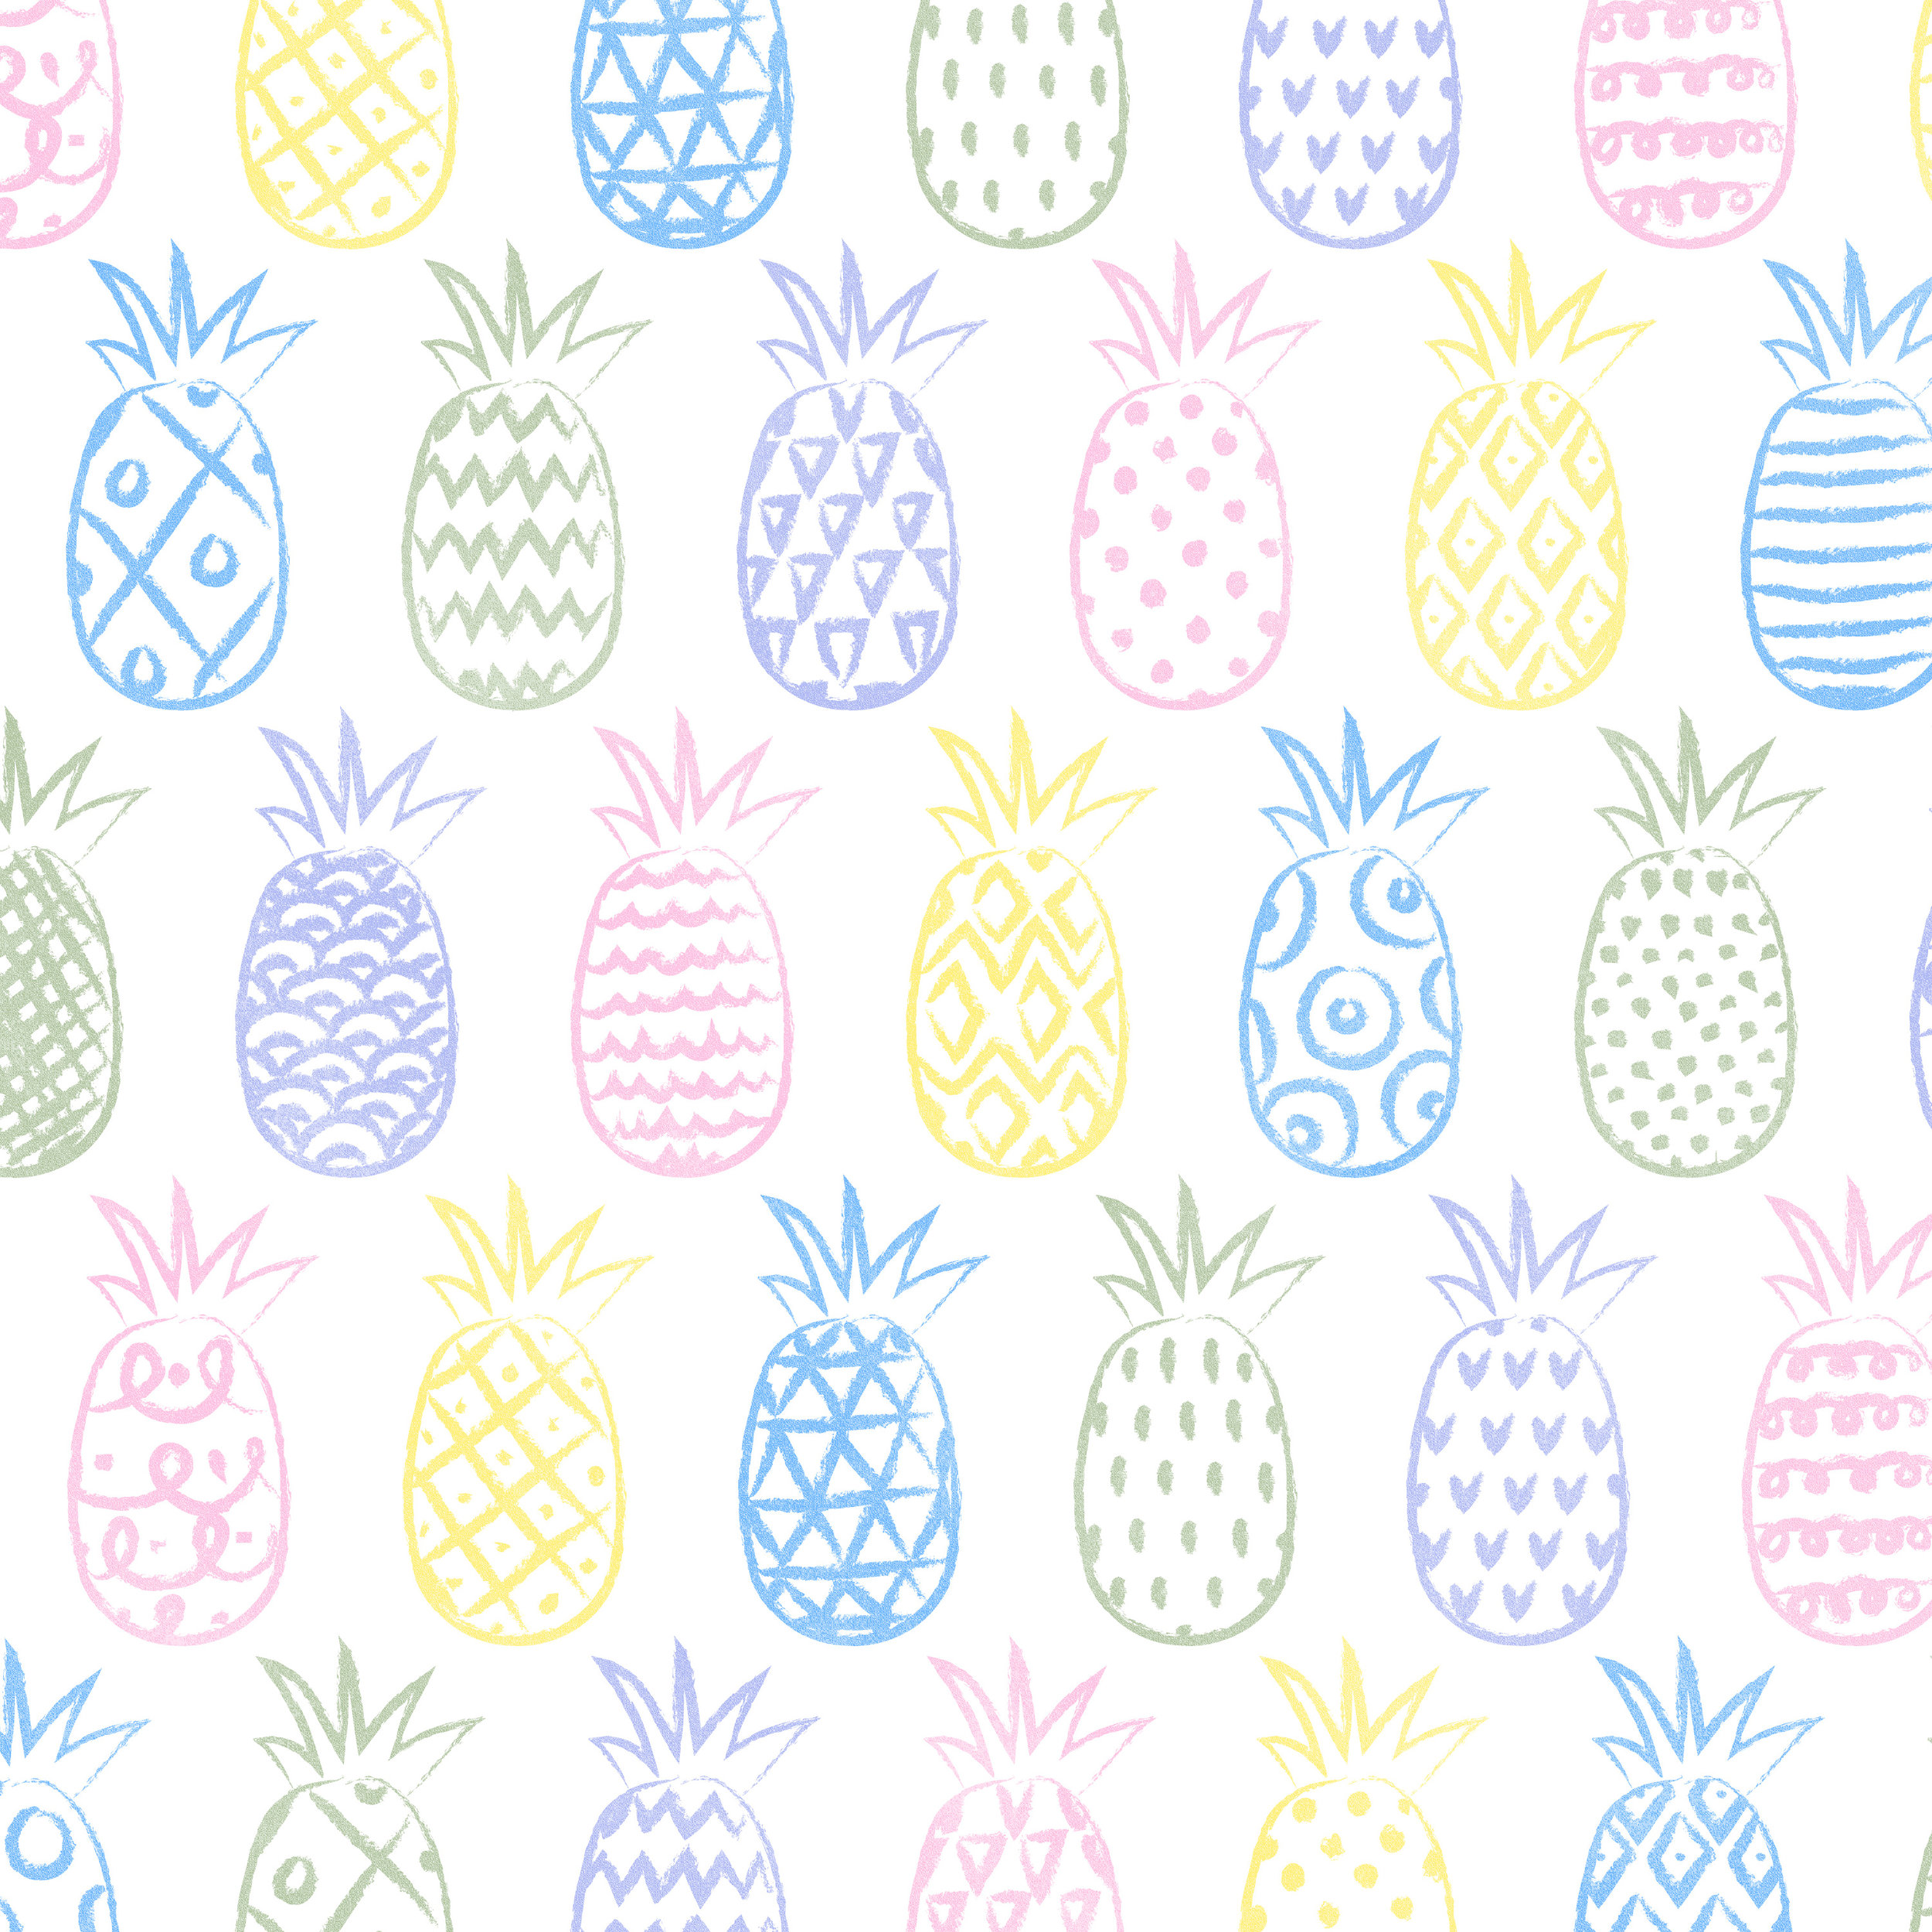 pineapples_pattern-01.jpg